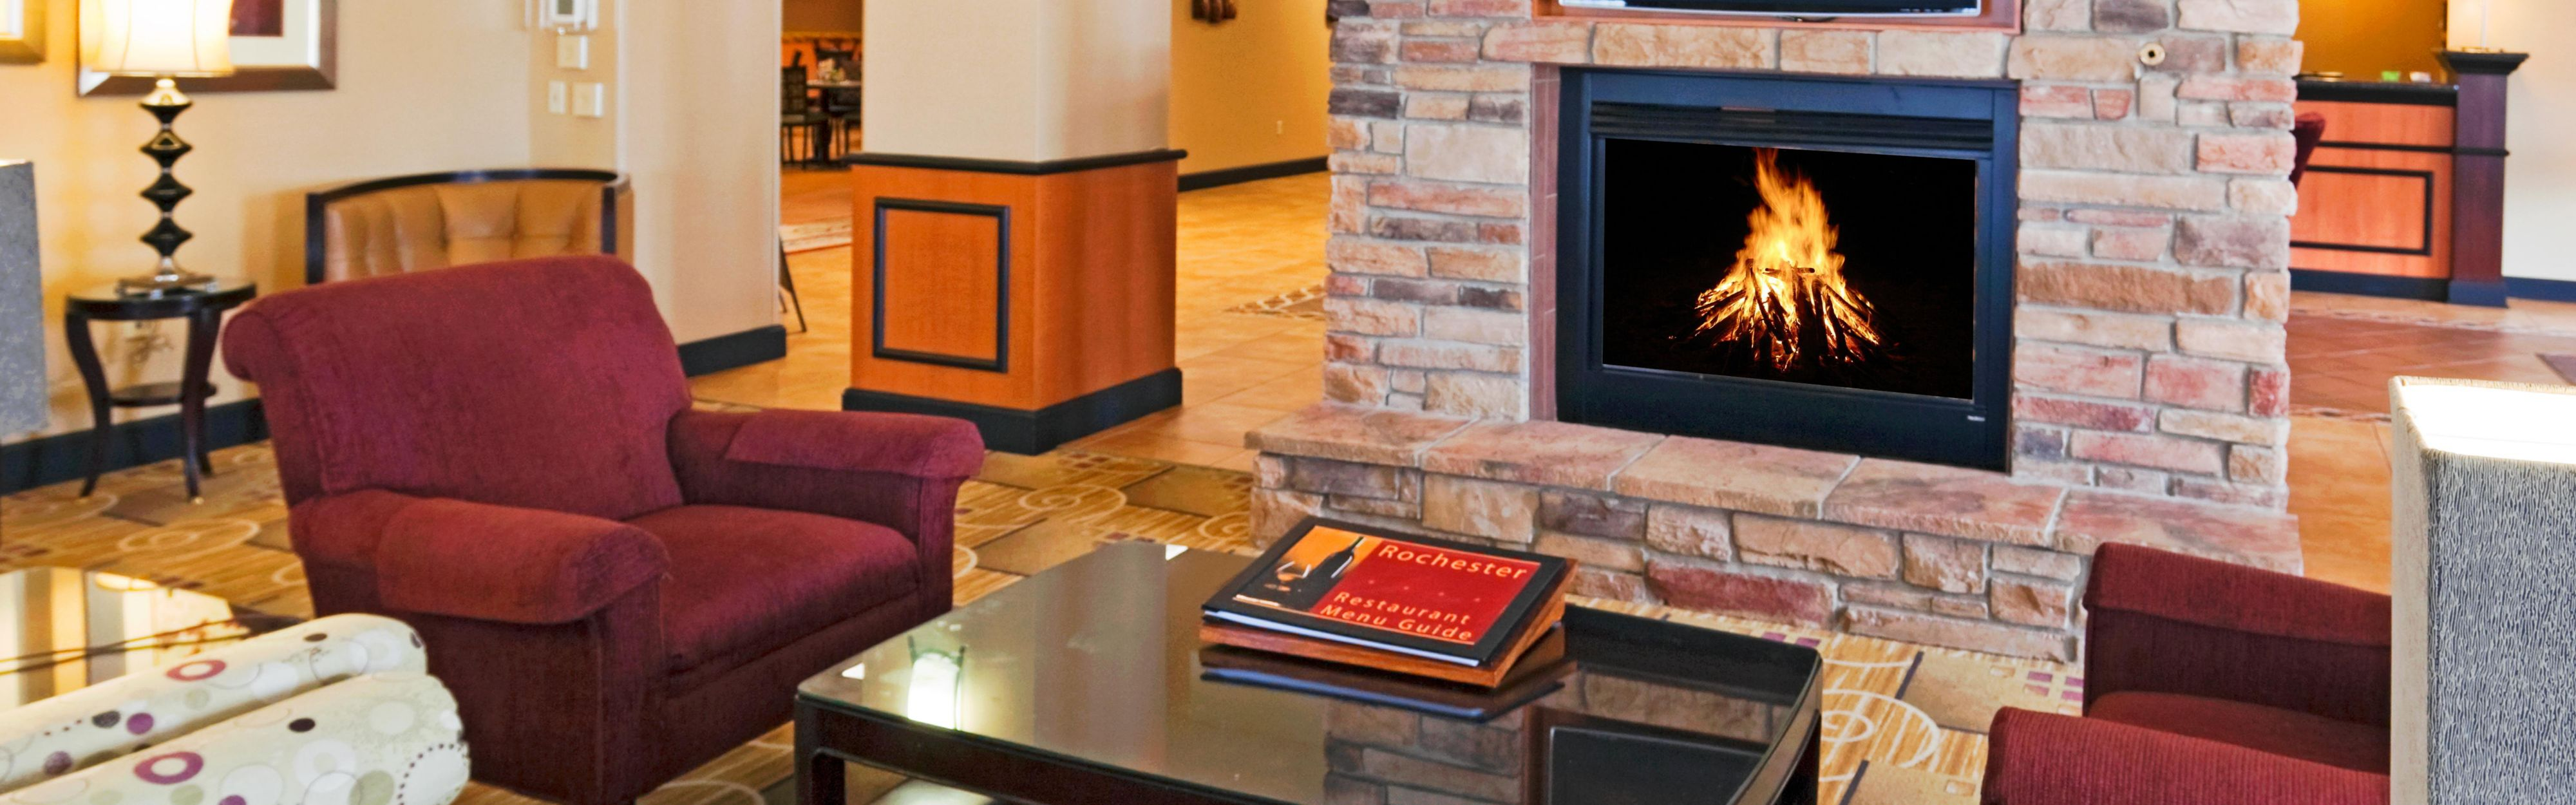 1 bedroom apartments for rent in rochester ny%0A     Lobby Lounge  Double Queen Guest Room